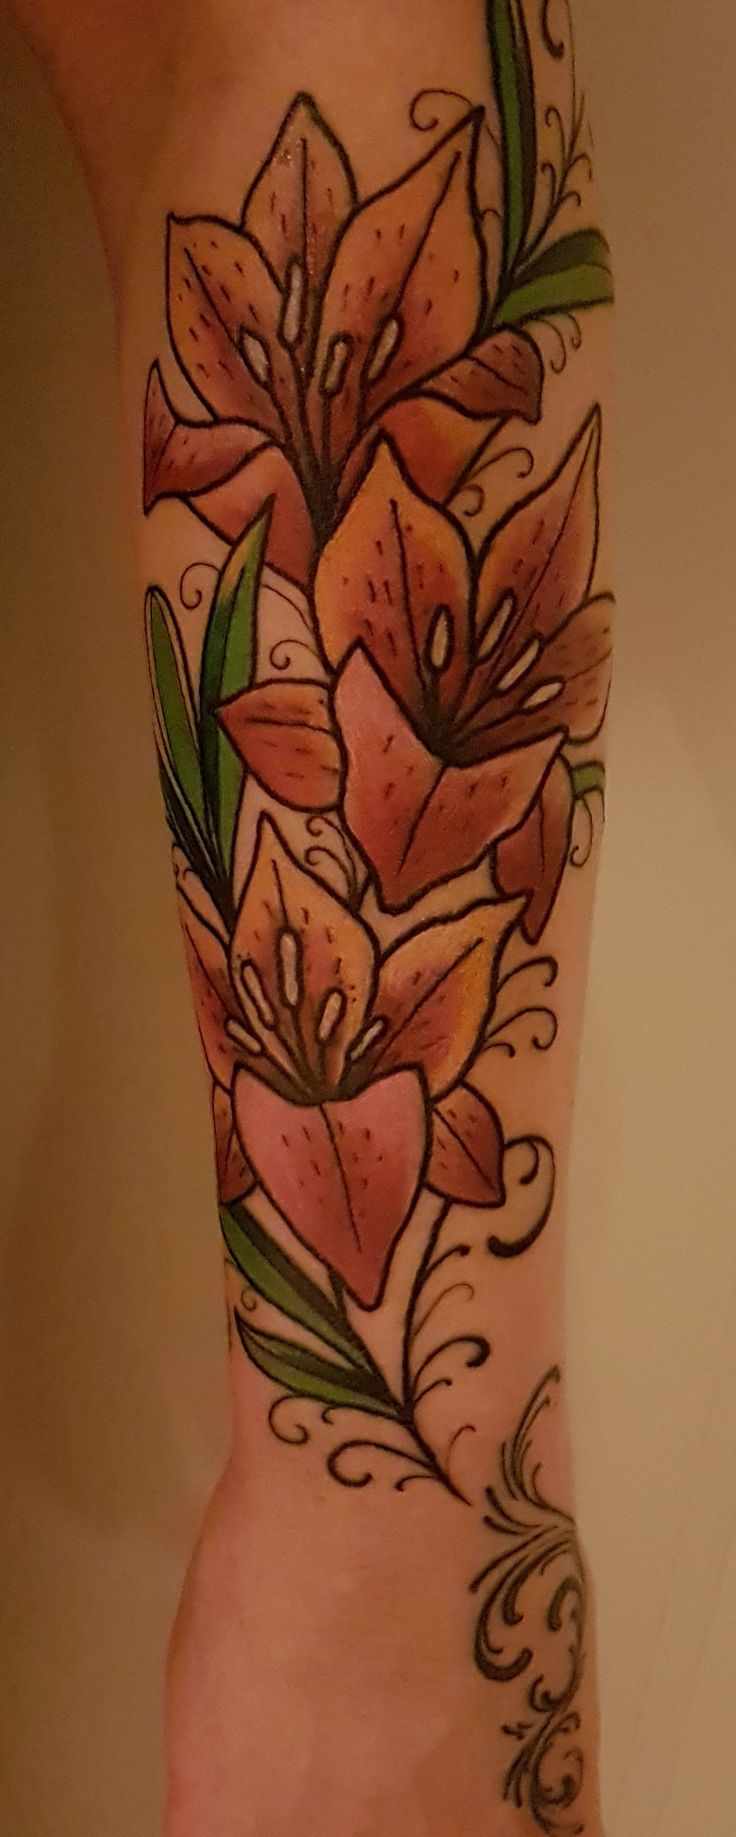 My latest tattoo on my lower arm.